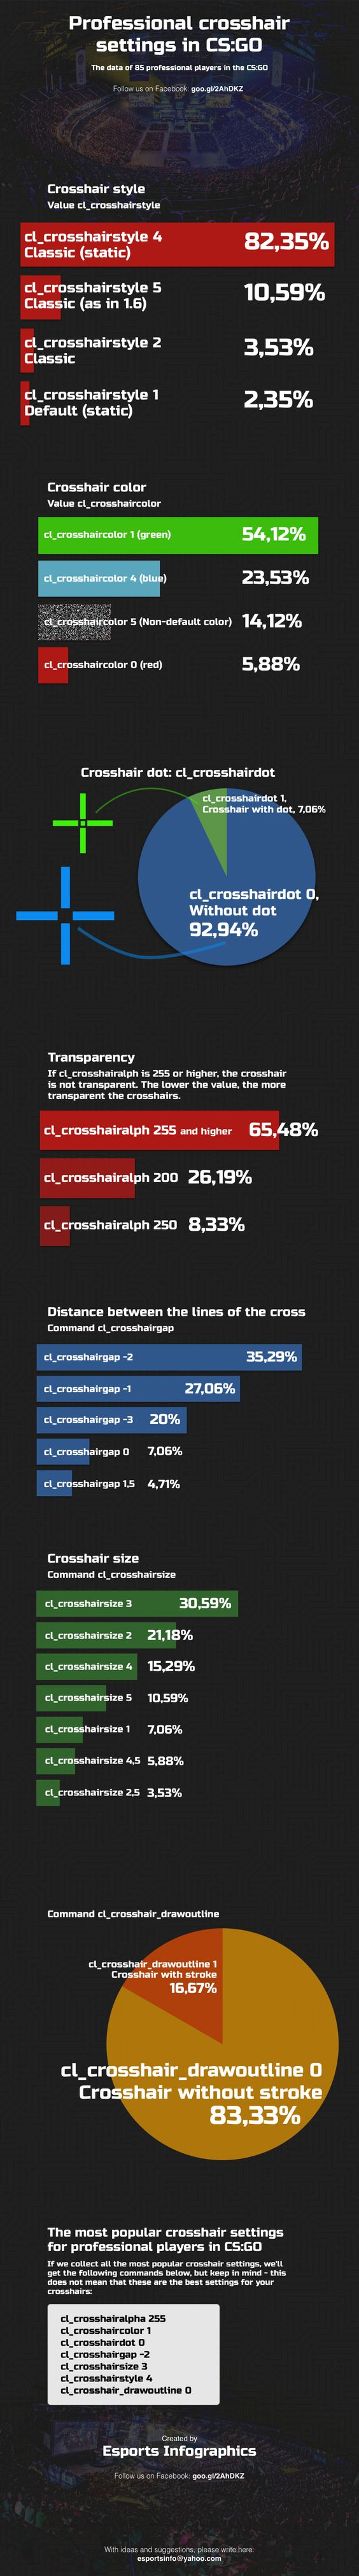 Infographic - Professional crosshair settings in CS:GO